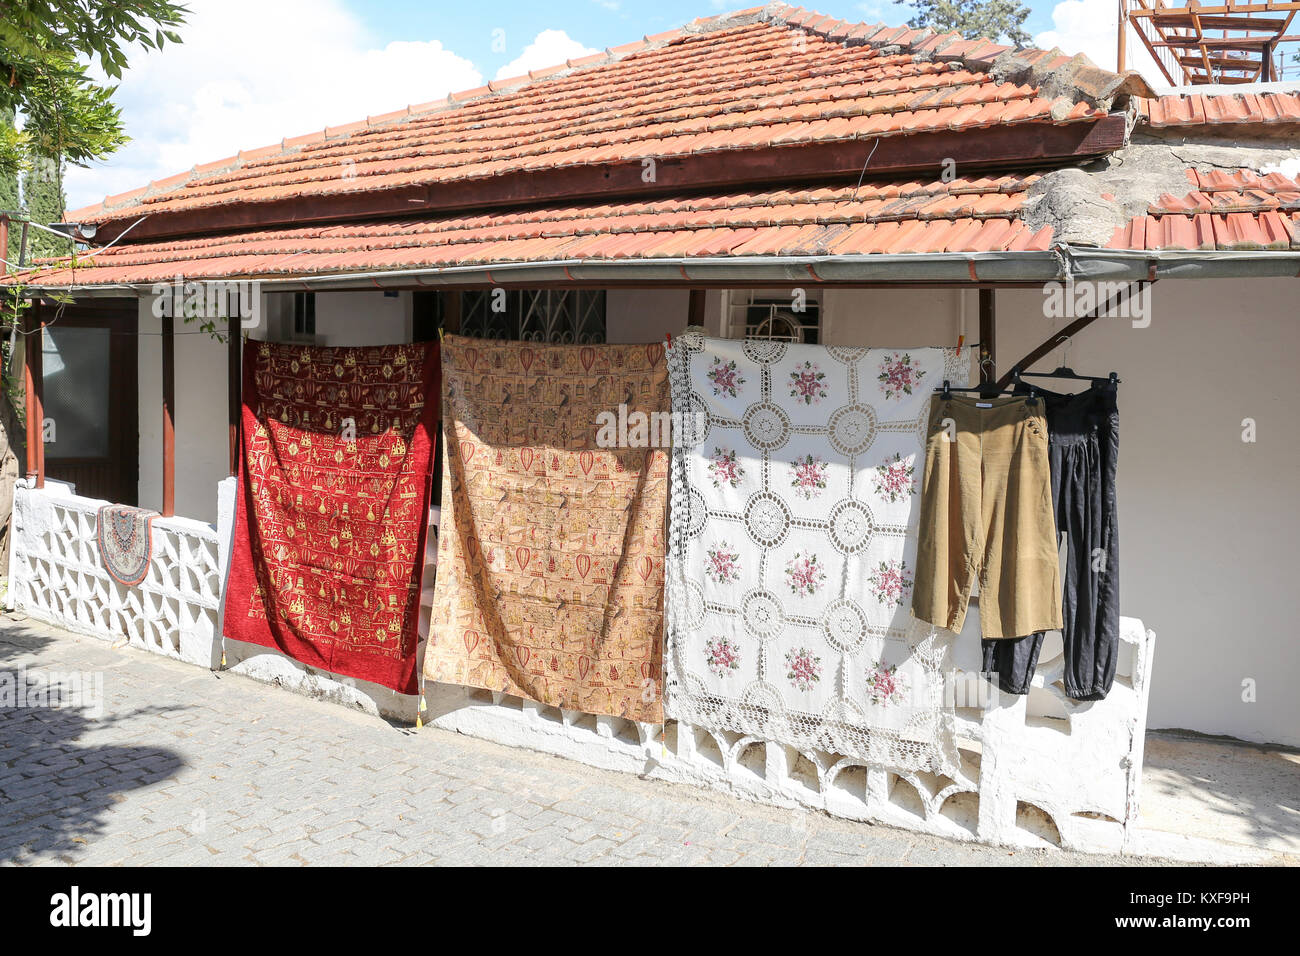 Traditional tablecloths in Alanya Castle, Antalya City, Turkey - Stock Image